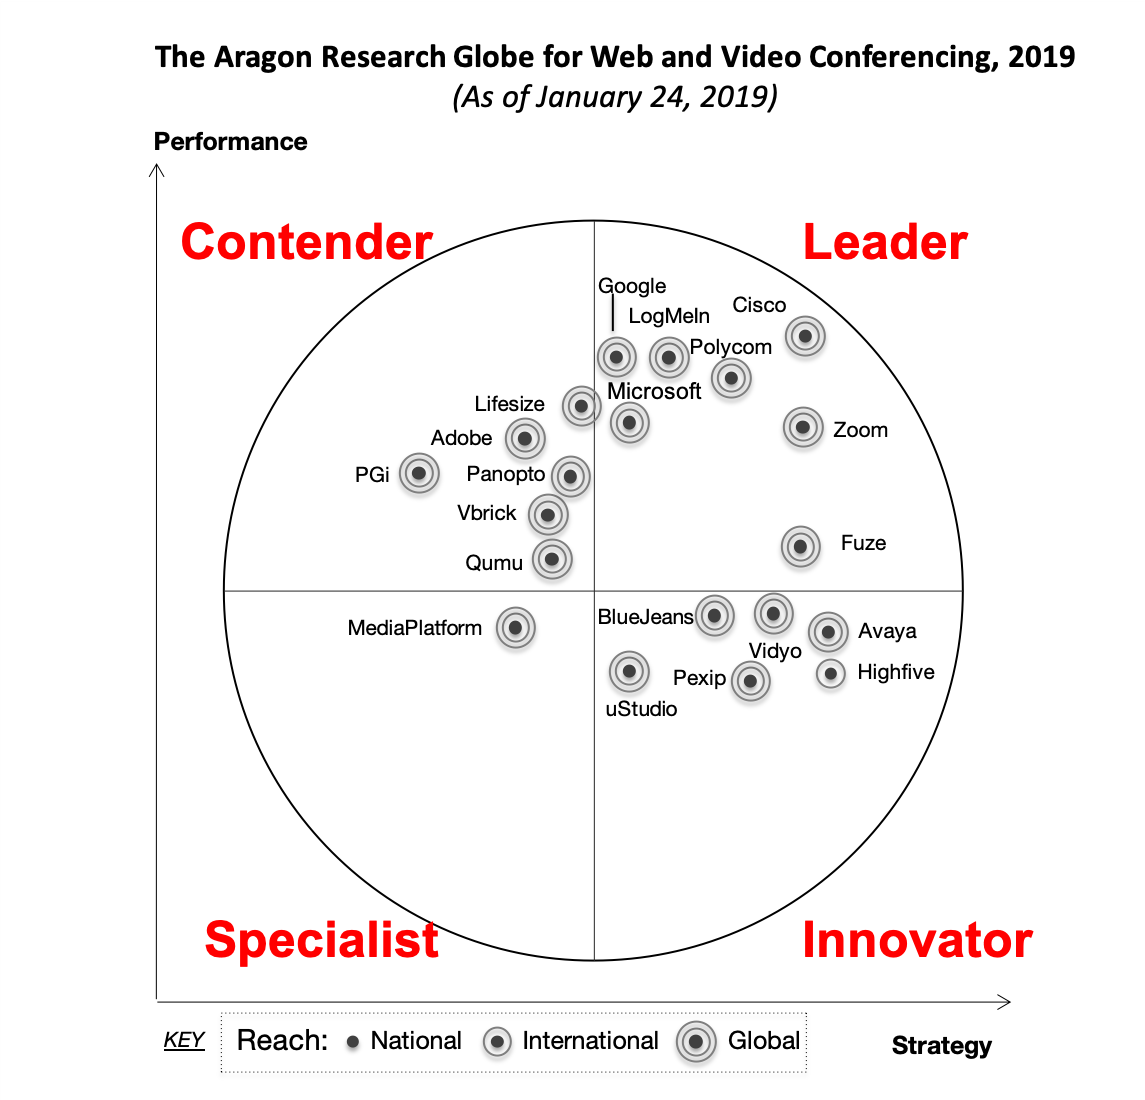 The Aragon Research Globe for Web and Video Conferencing, 2018